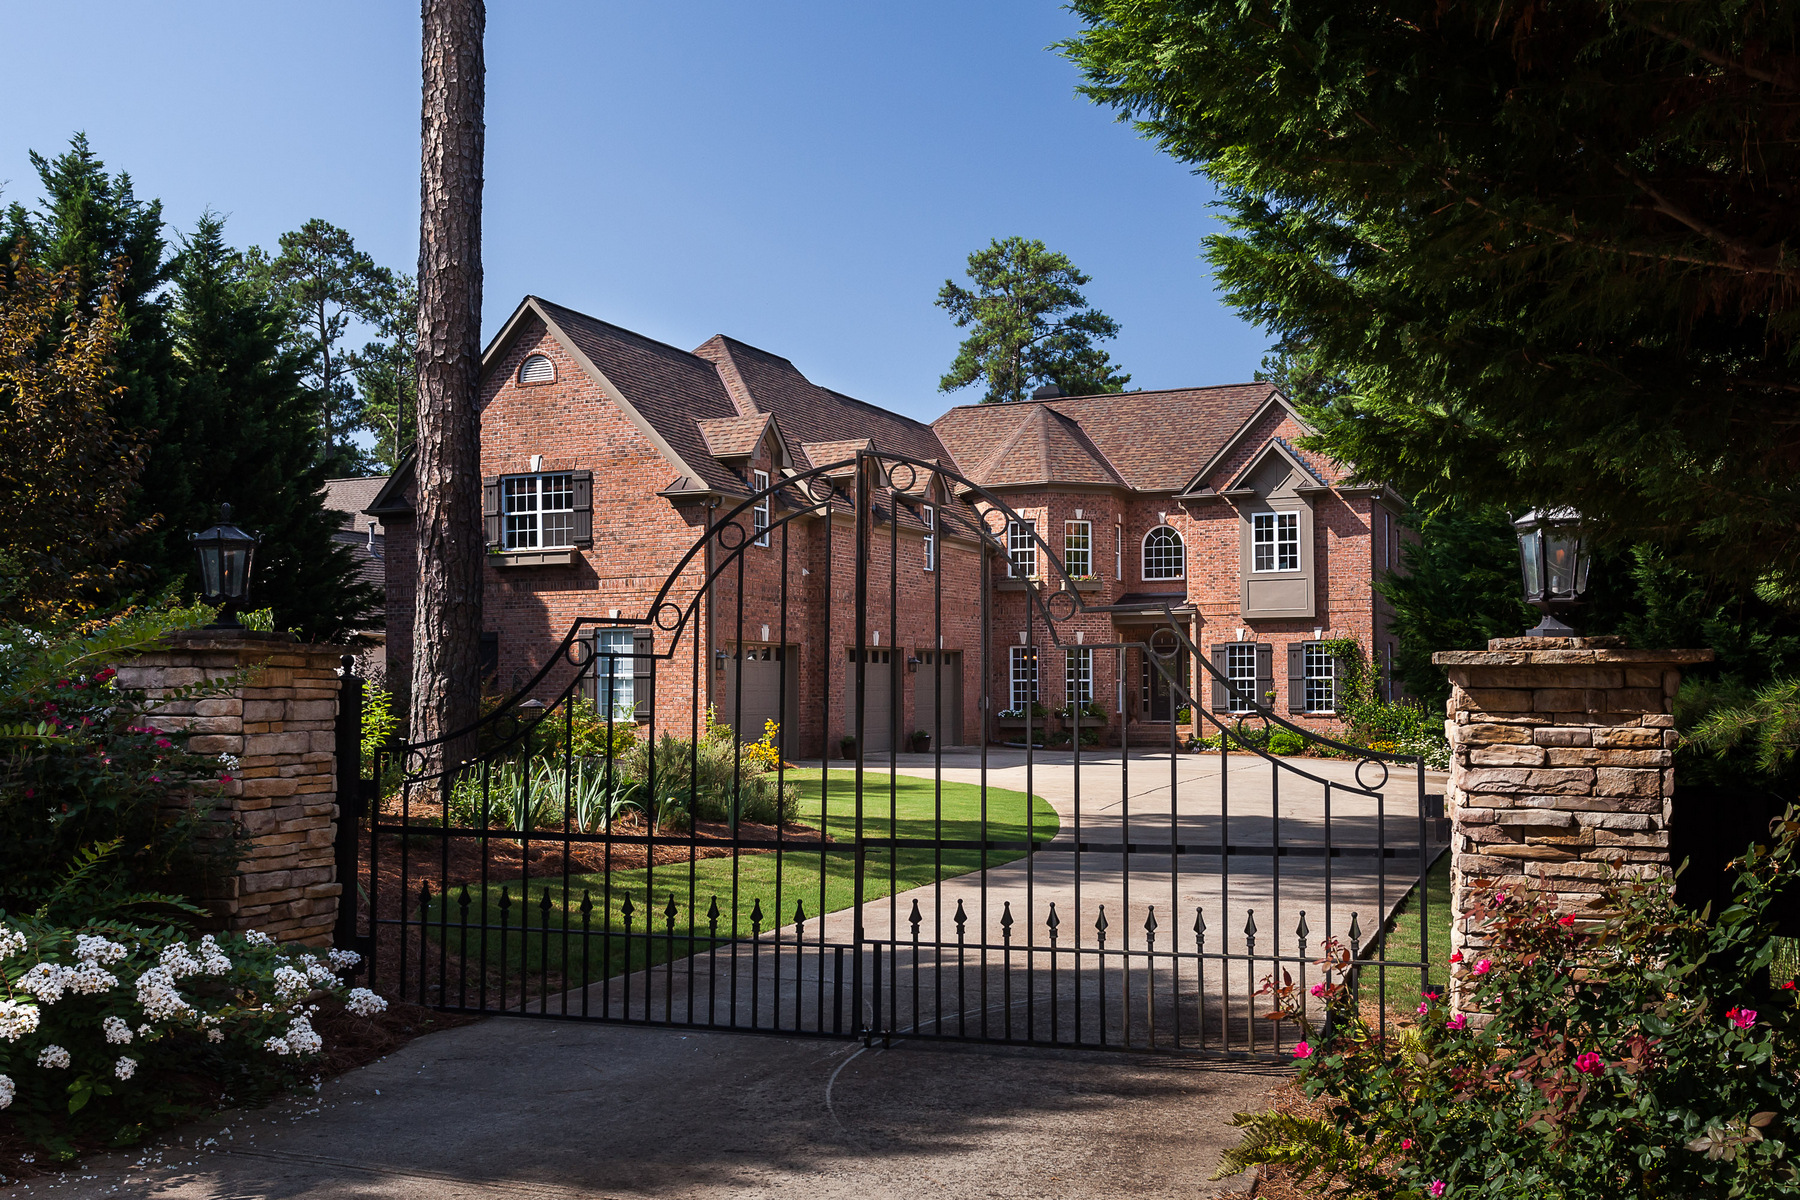 Single Family Home for Sale at Private Gated Home Situated off Sought After Bagley Road 2468 Bagley Road Cumming, Georgia 30041 United States